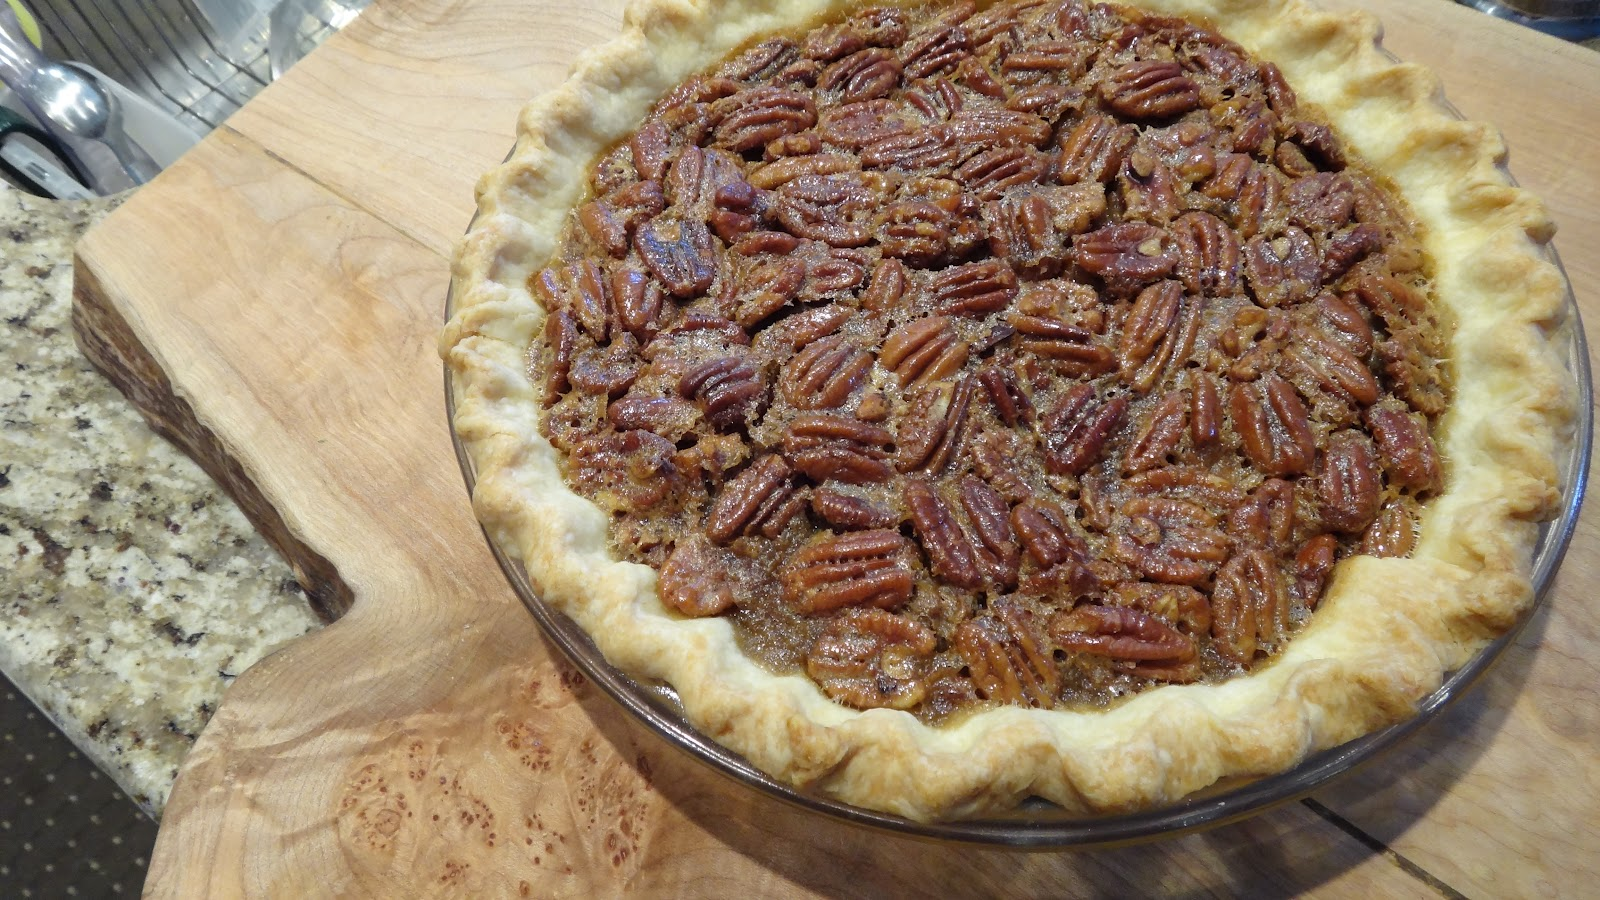 want to cook that: Maple Bacon Bourbon Pecan Pie